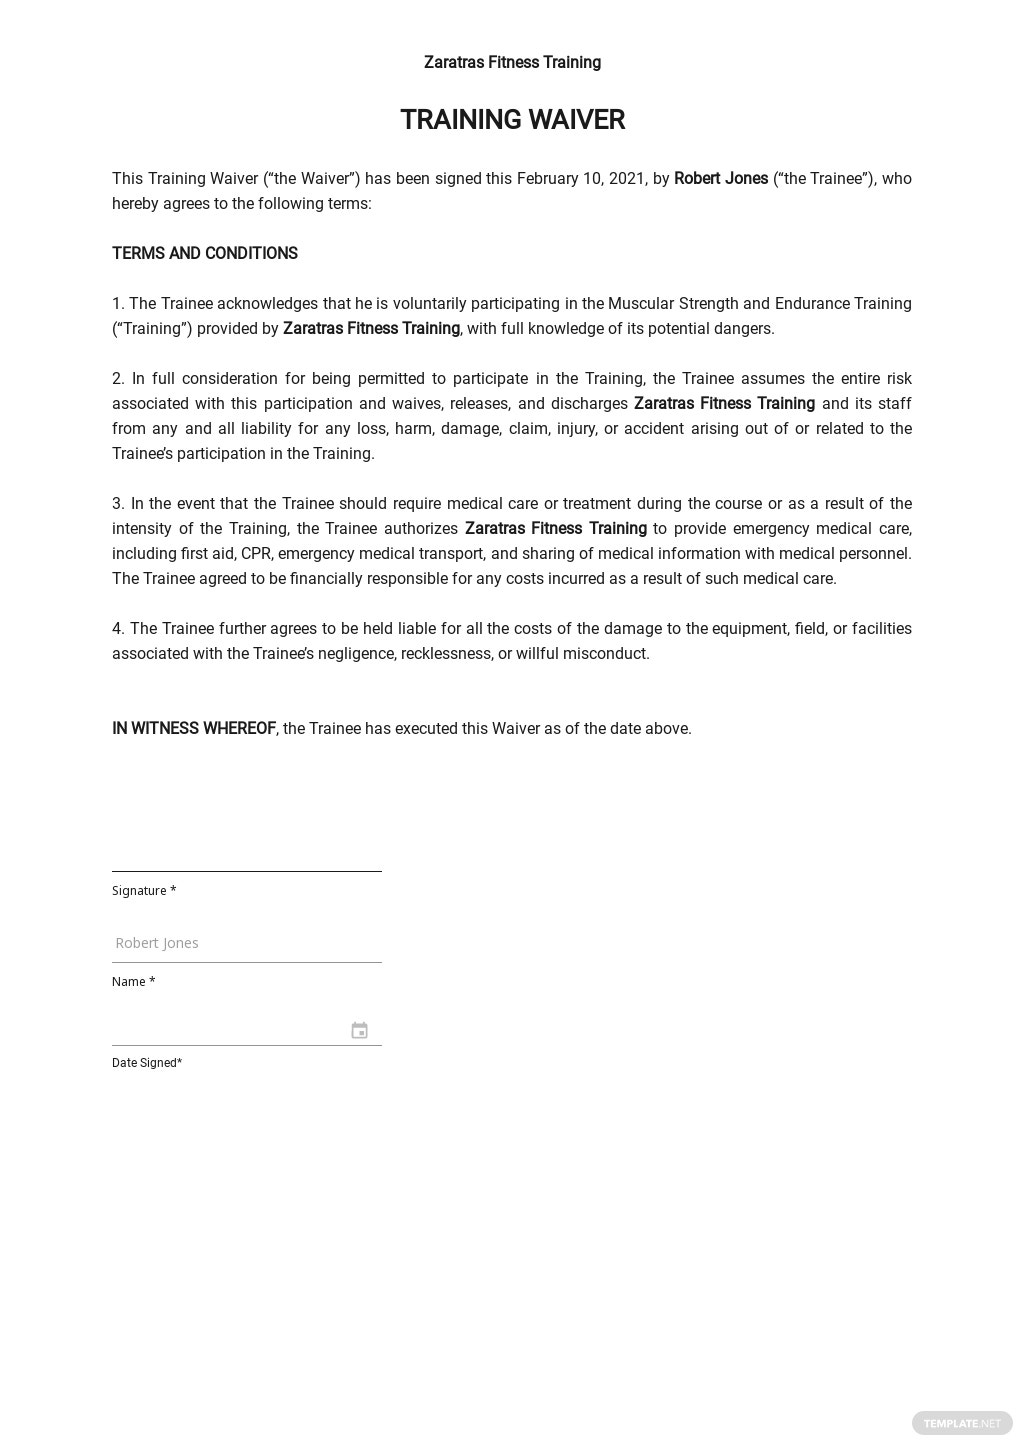 Training Waiver Sample Template